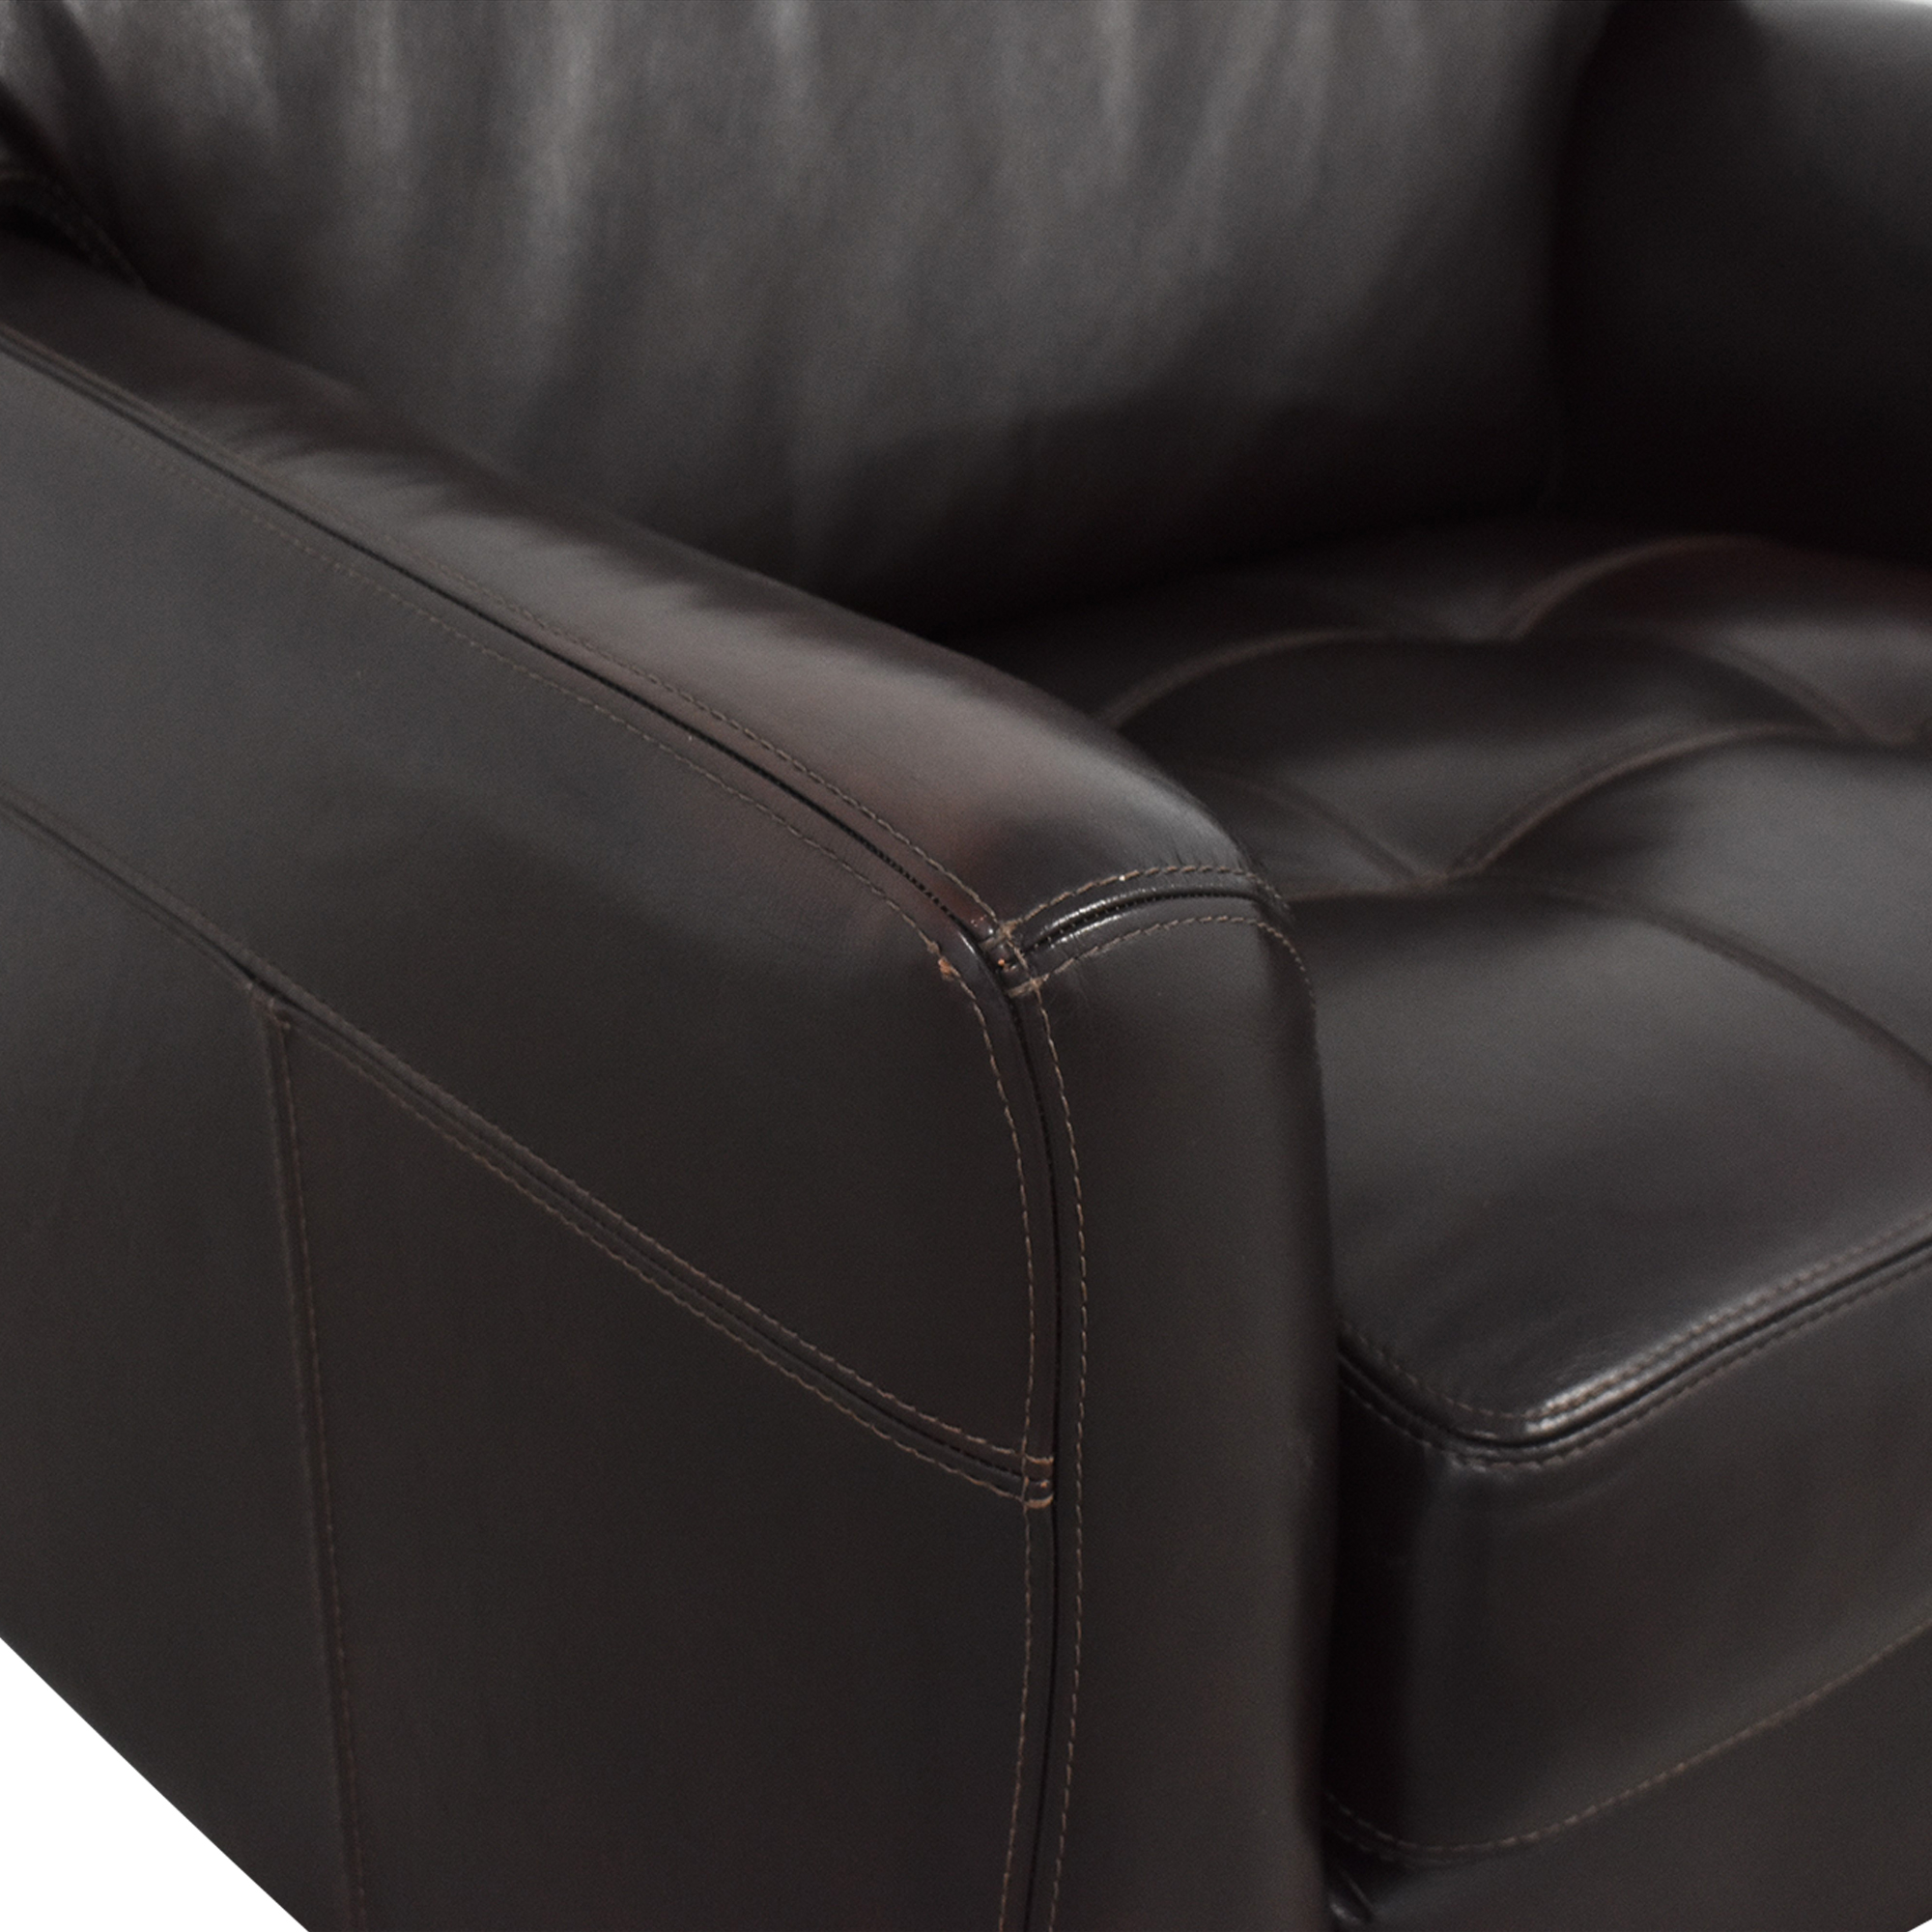 Macy's Macy's Chateau d'Ax Accent Chair for sale